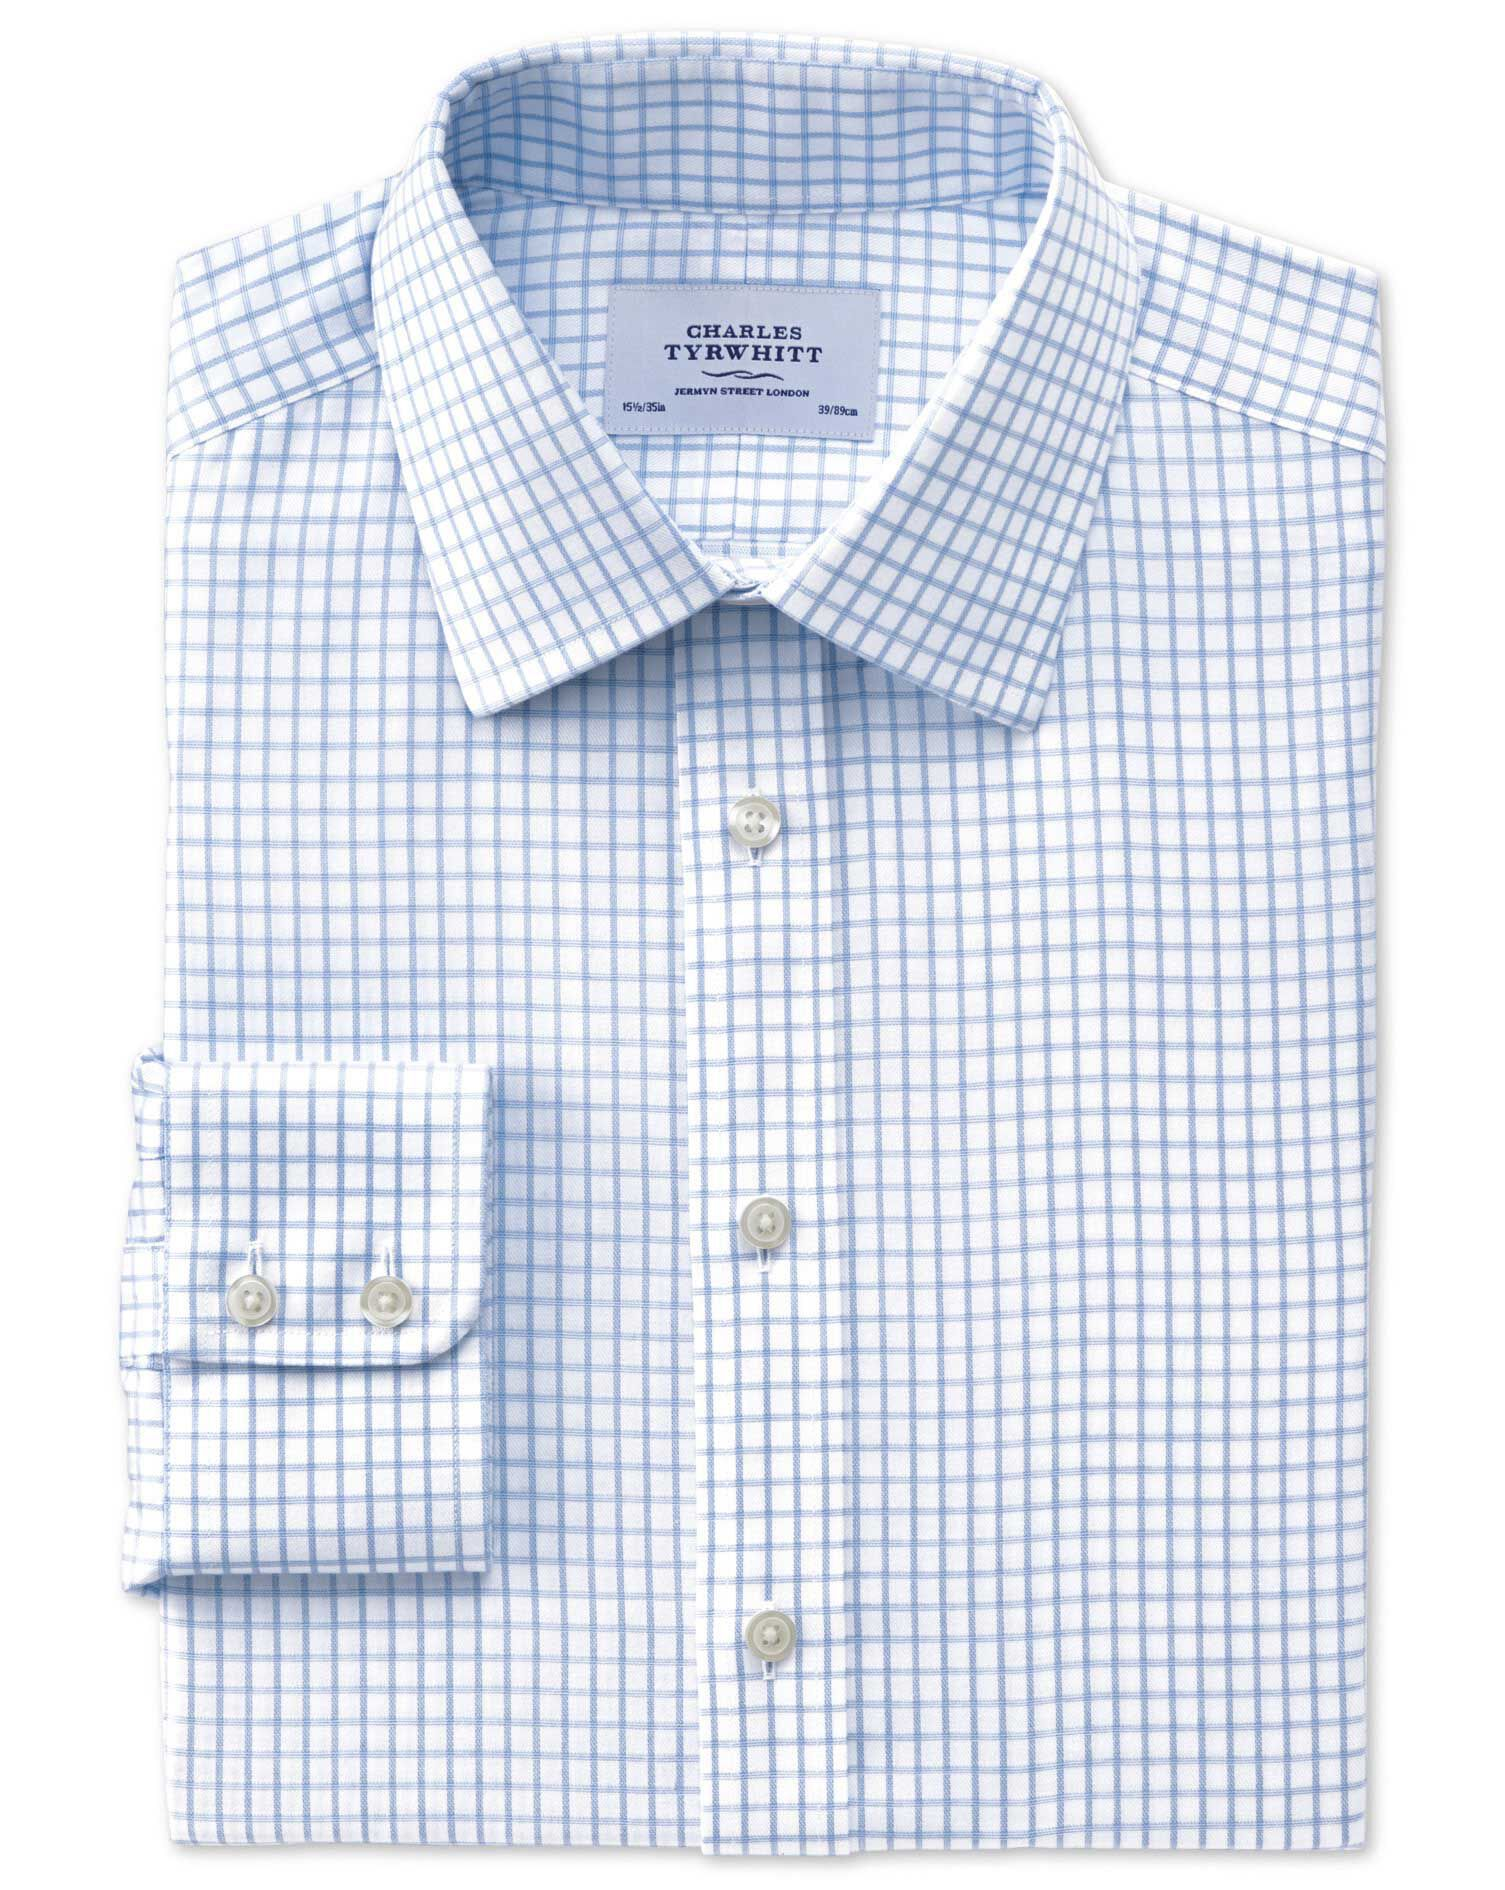 Slim Fit Non-Iron Windowpane Check Blue Cotton Formal Shirt Single Cuff Size 15/32 by Charles Tyrwhi